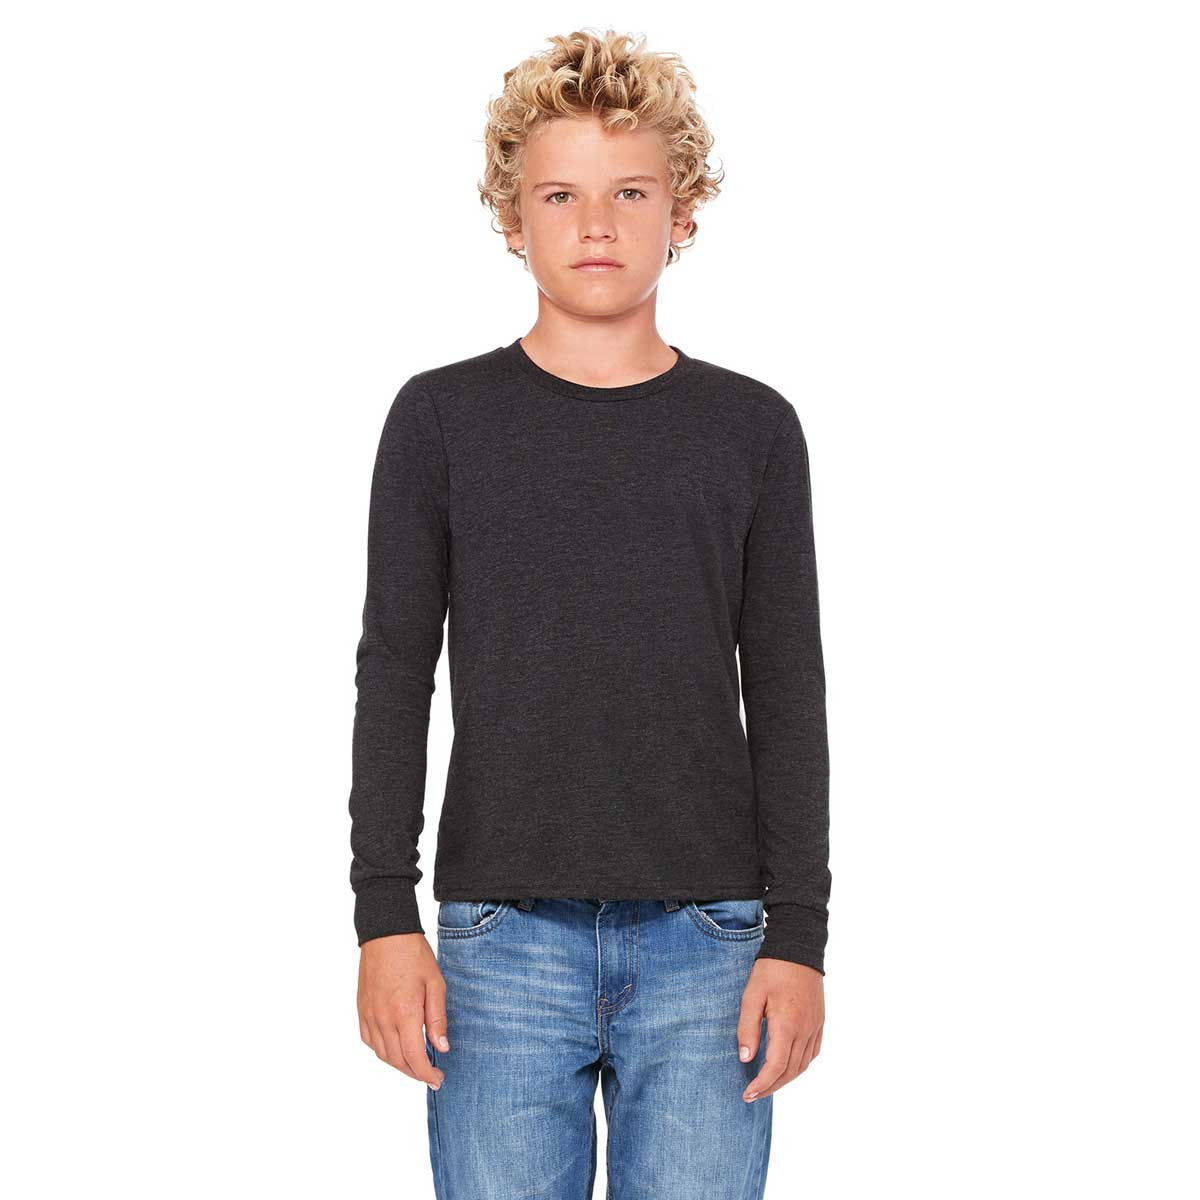 Bella + Canvas Youth Charcoal-Black Triblend Jersey Long-Sleeve T-Shirt